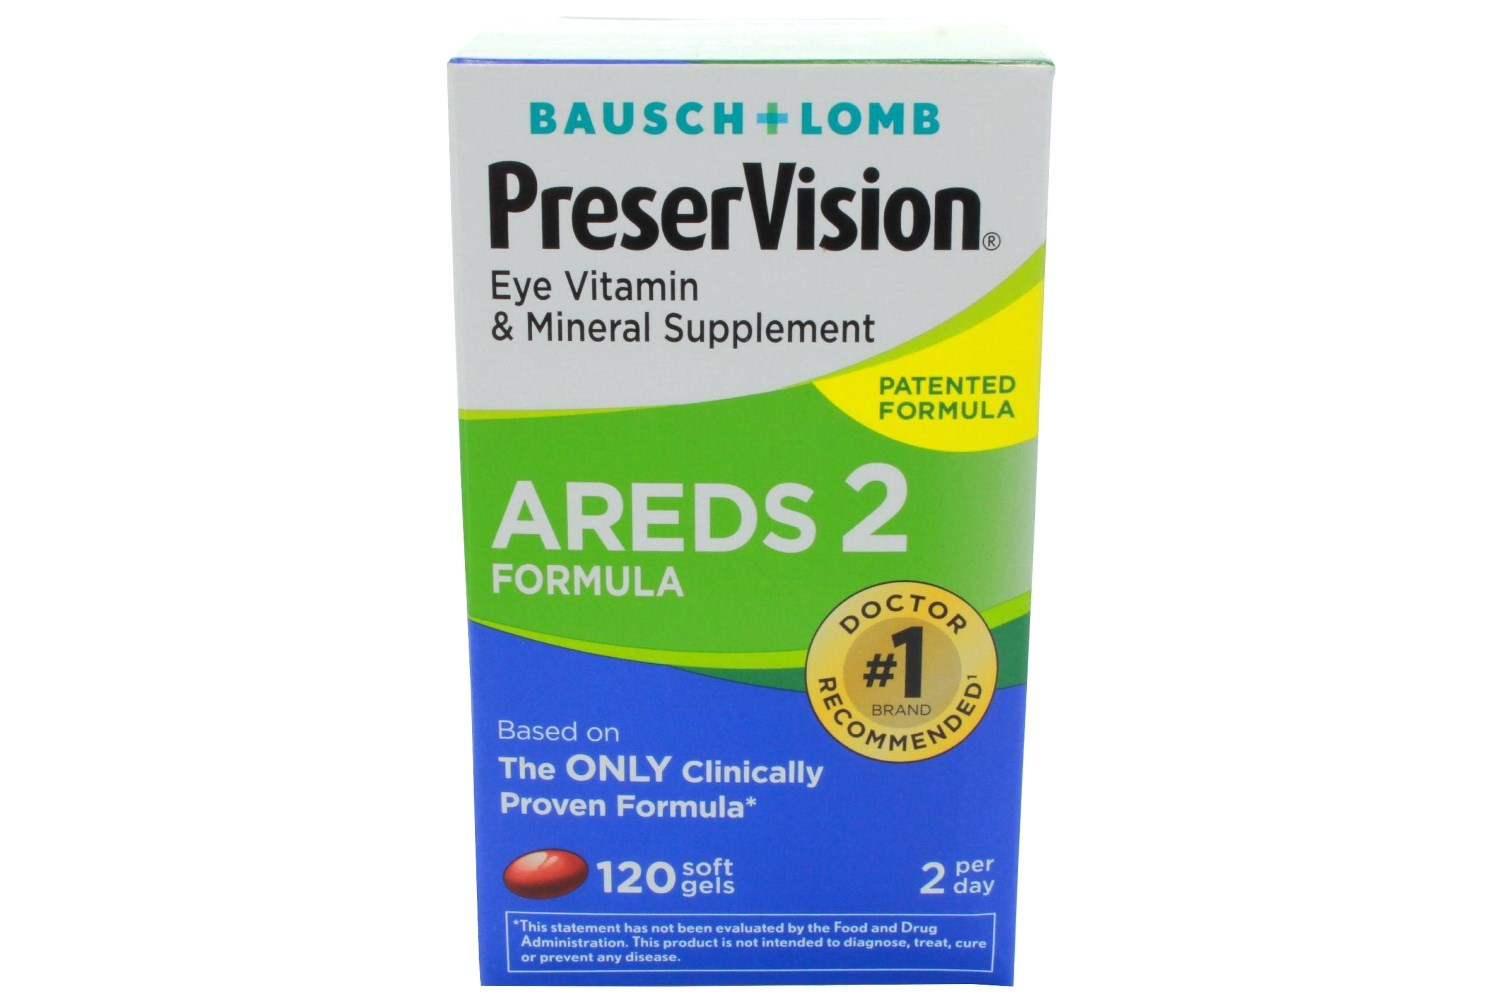 f33f3be51b PreserVision AREDS 2 Formula (120 ct.) - TechnoReadingGlasses